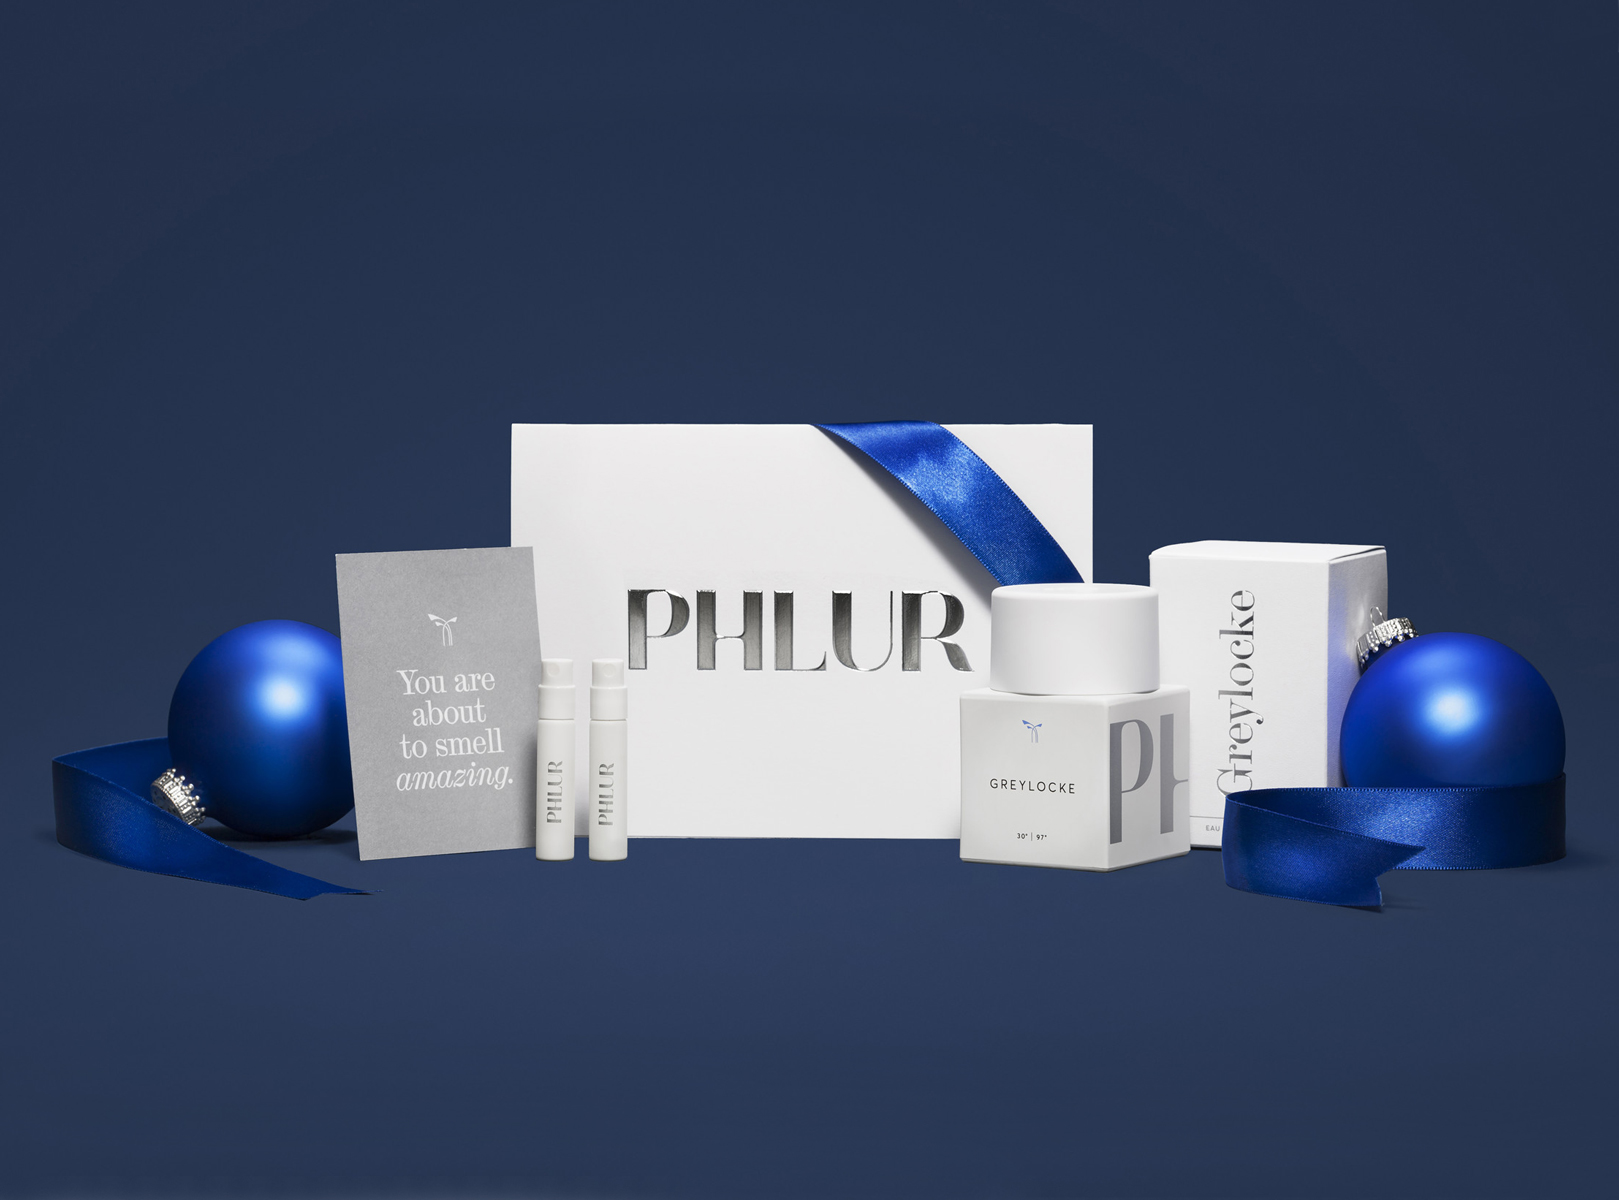 <p>Phlur The Quintessential Gift </p>